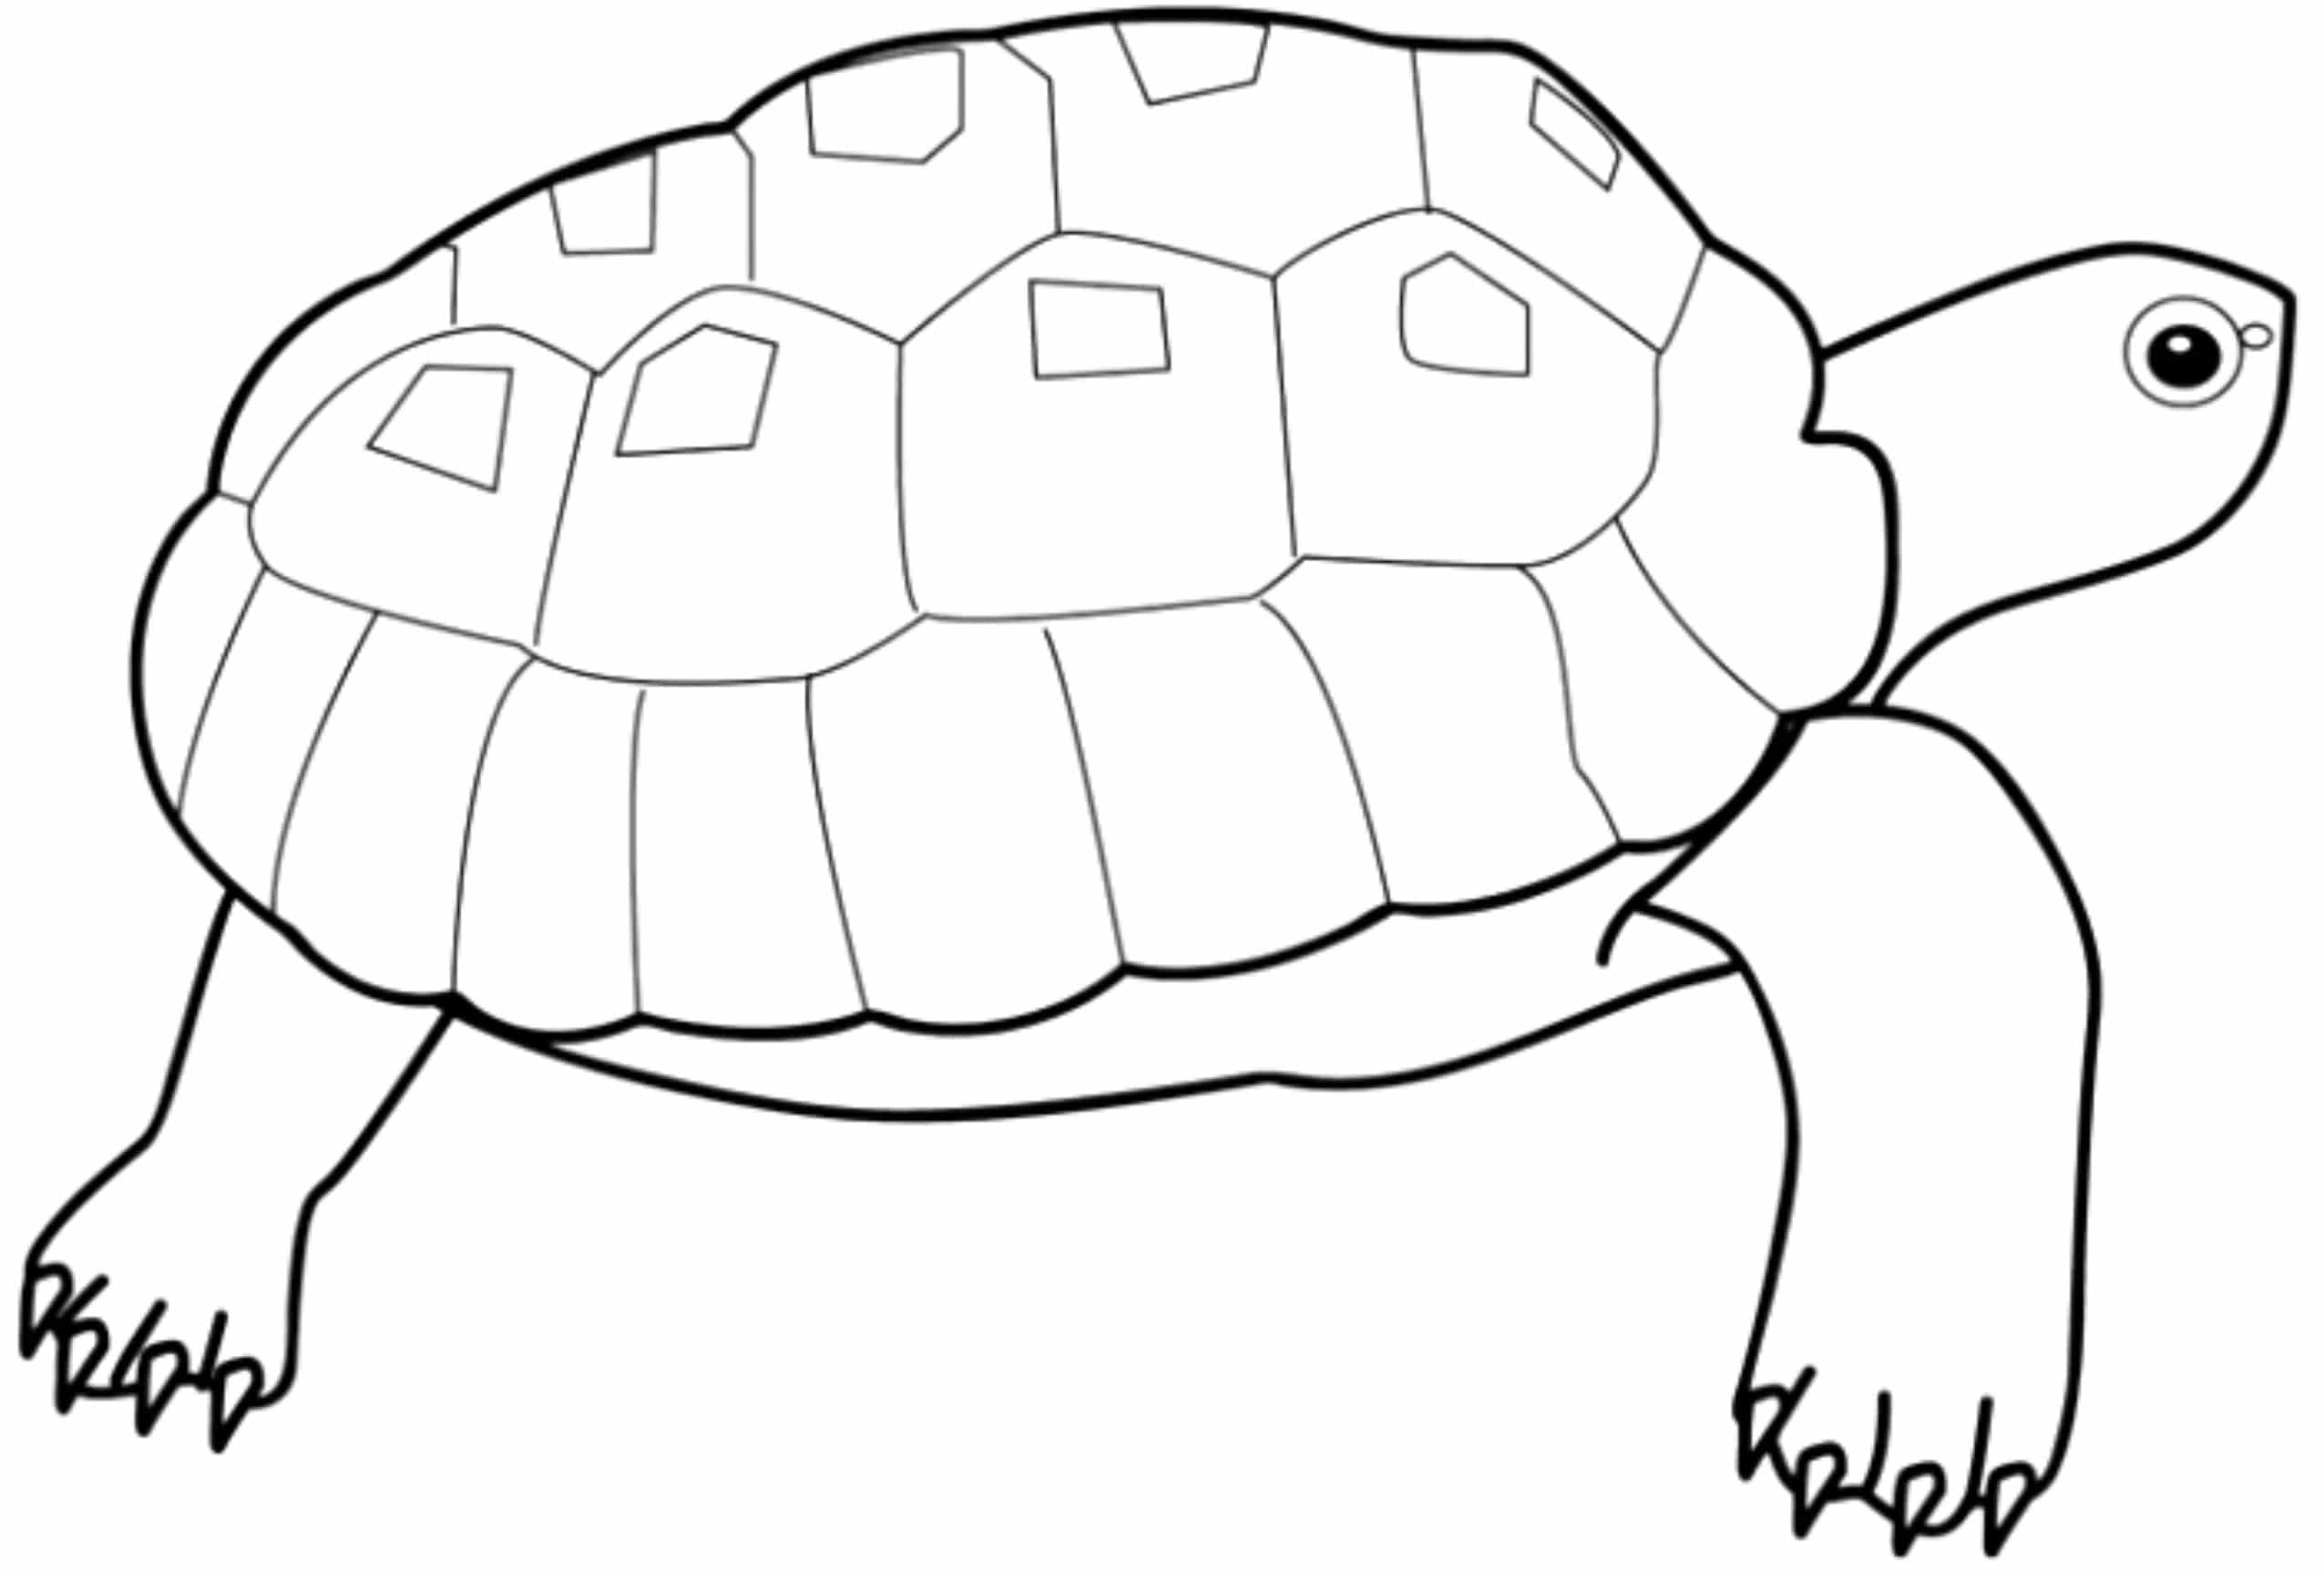 turtle coloring images print download turtle coloring pages as the turtle coloring images